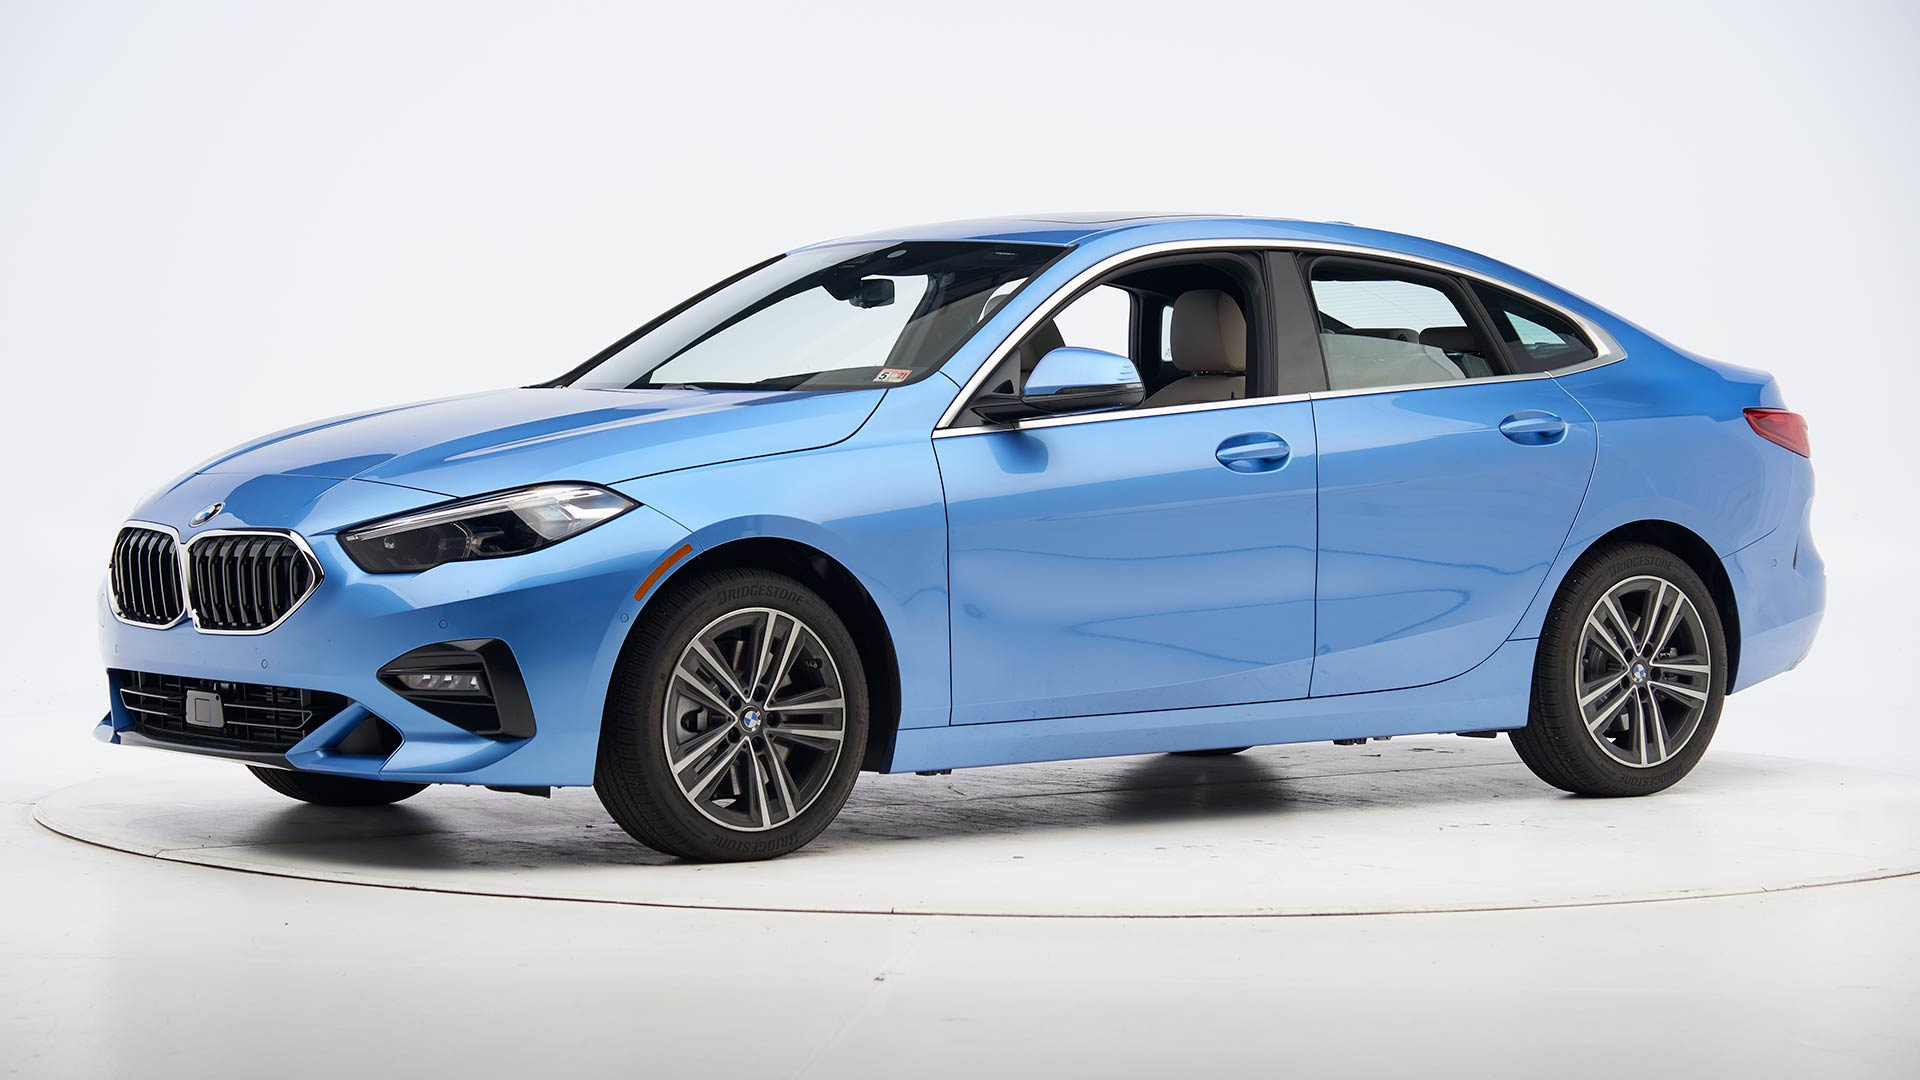 2020 BMW 2 series Gran Coupe 4-door sedan